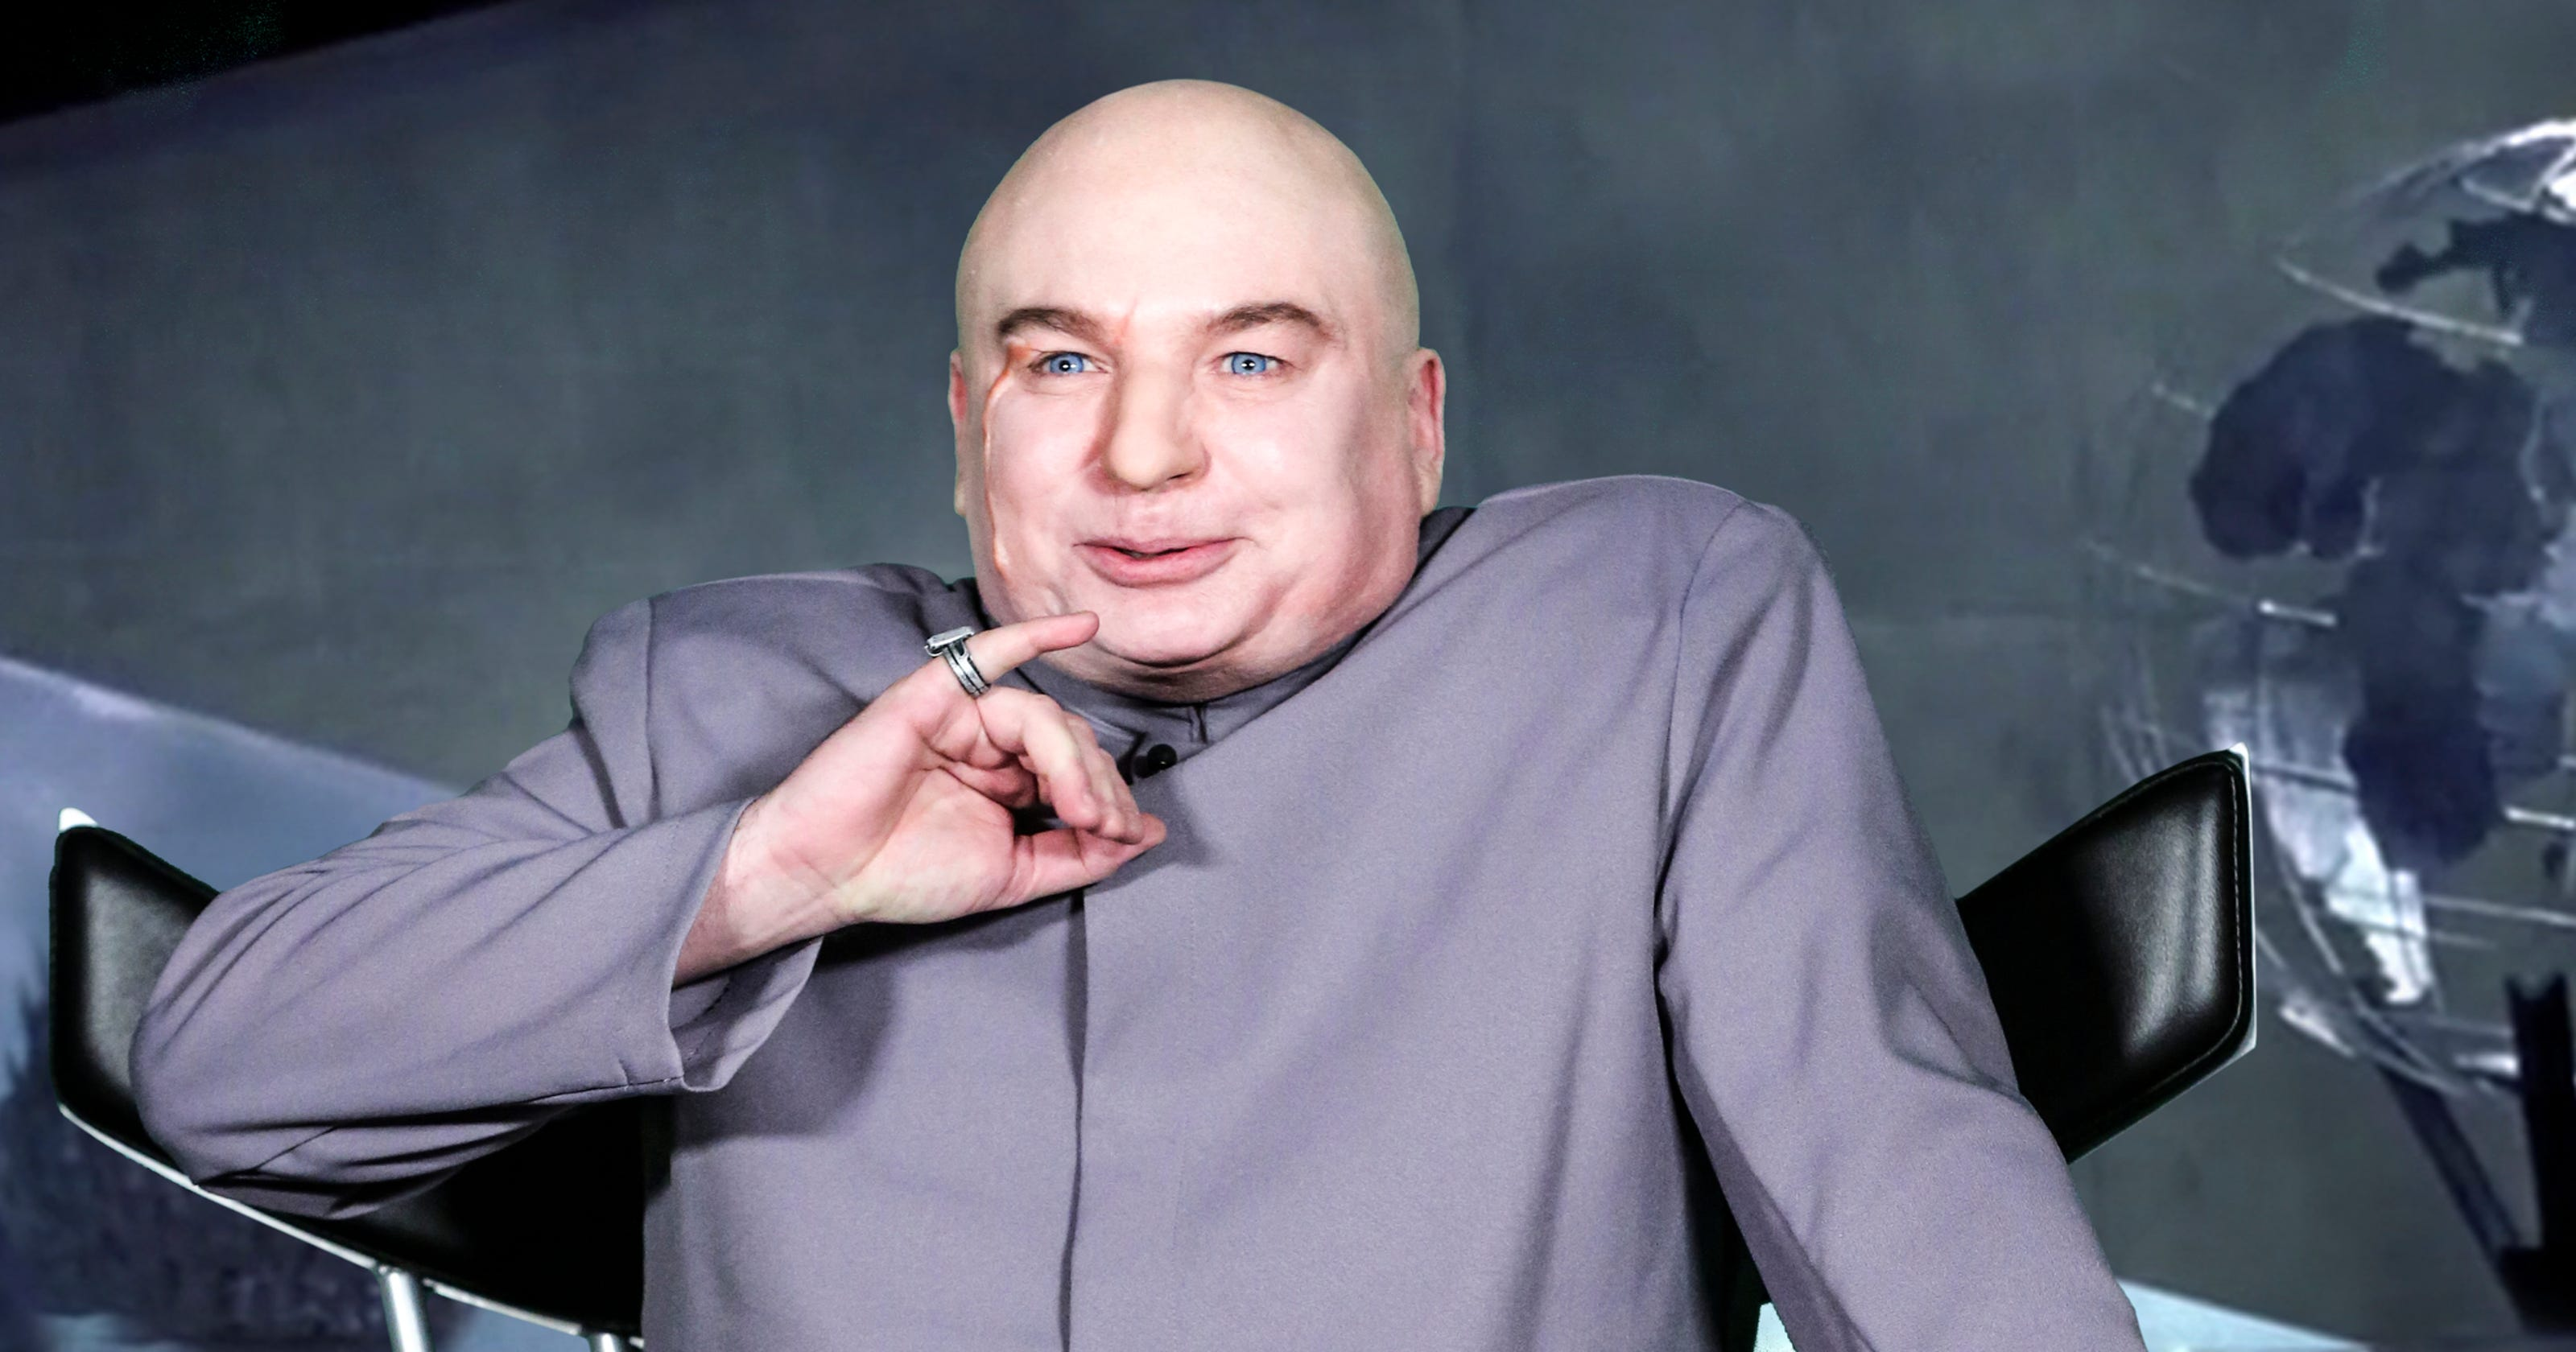 mike myers dr evil chats with jimmy fallon was fired by trump